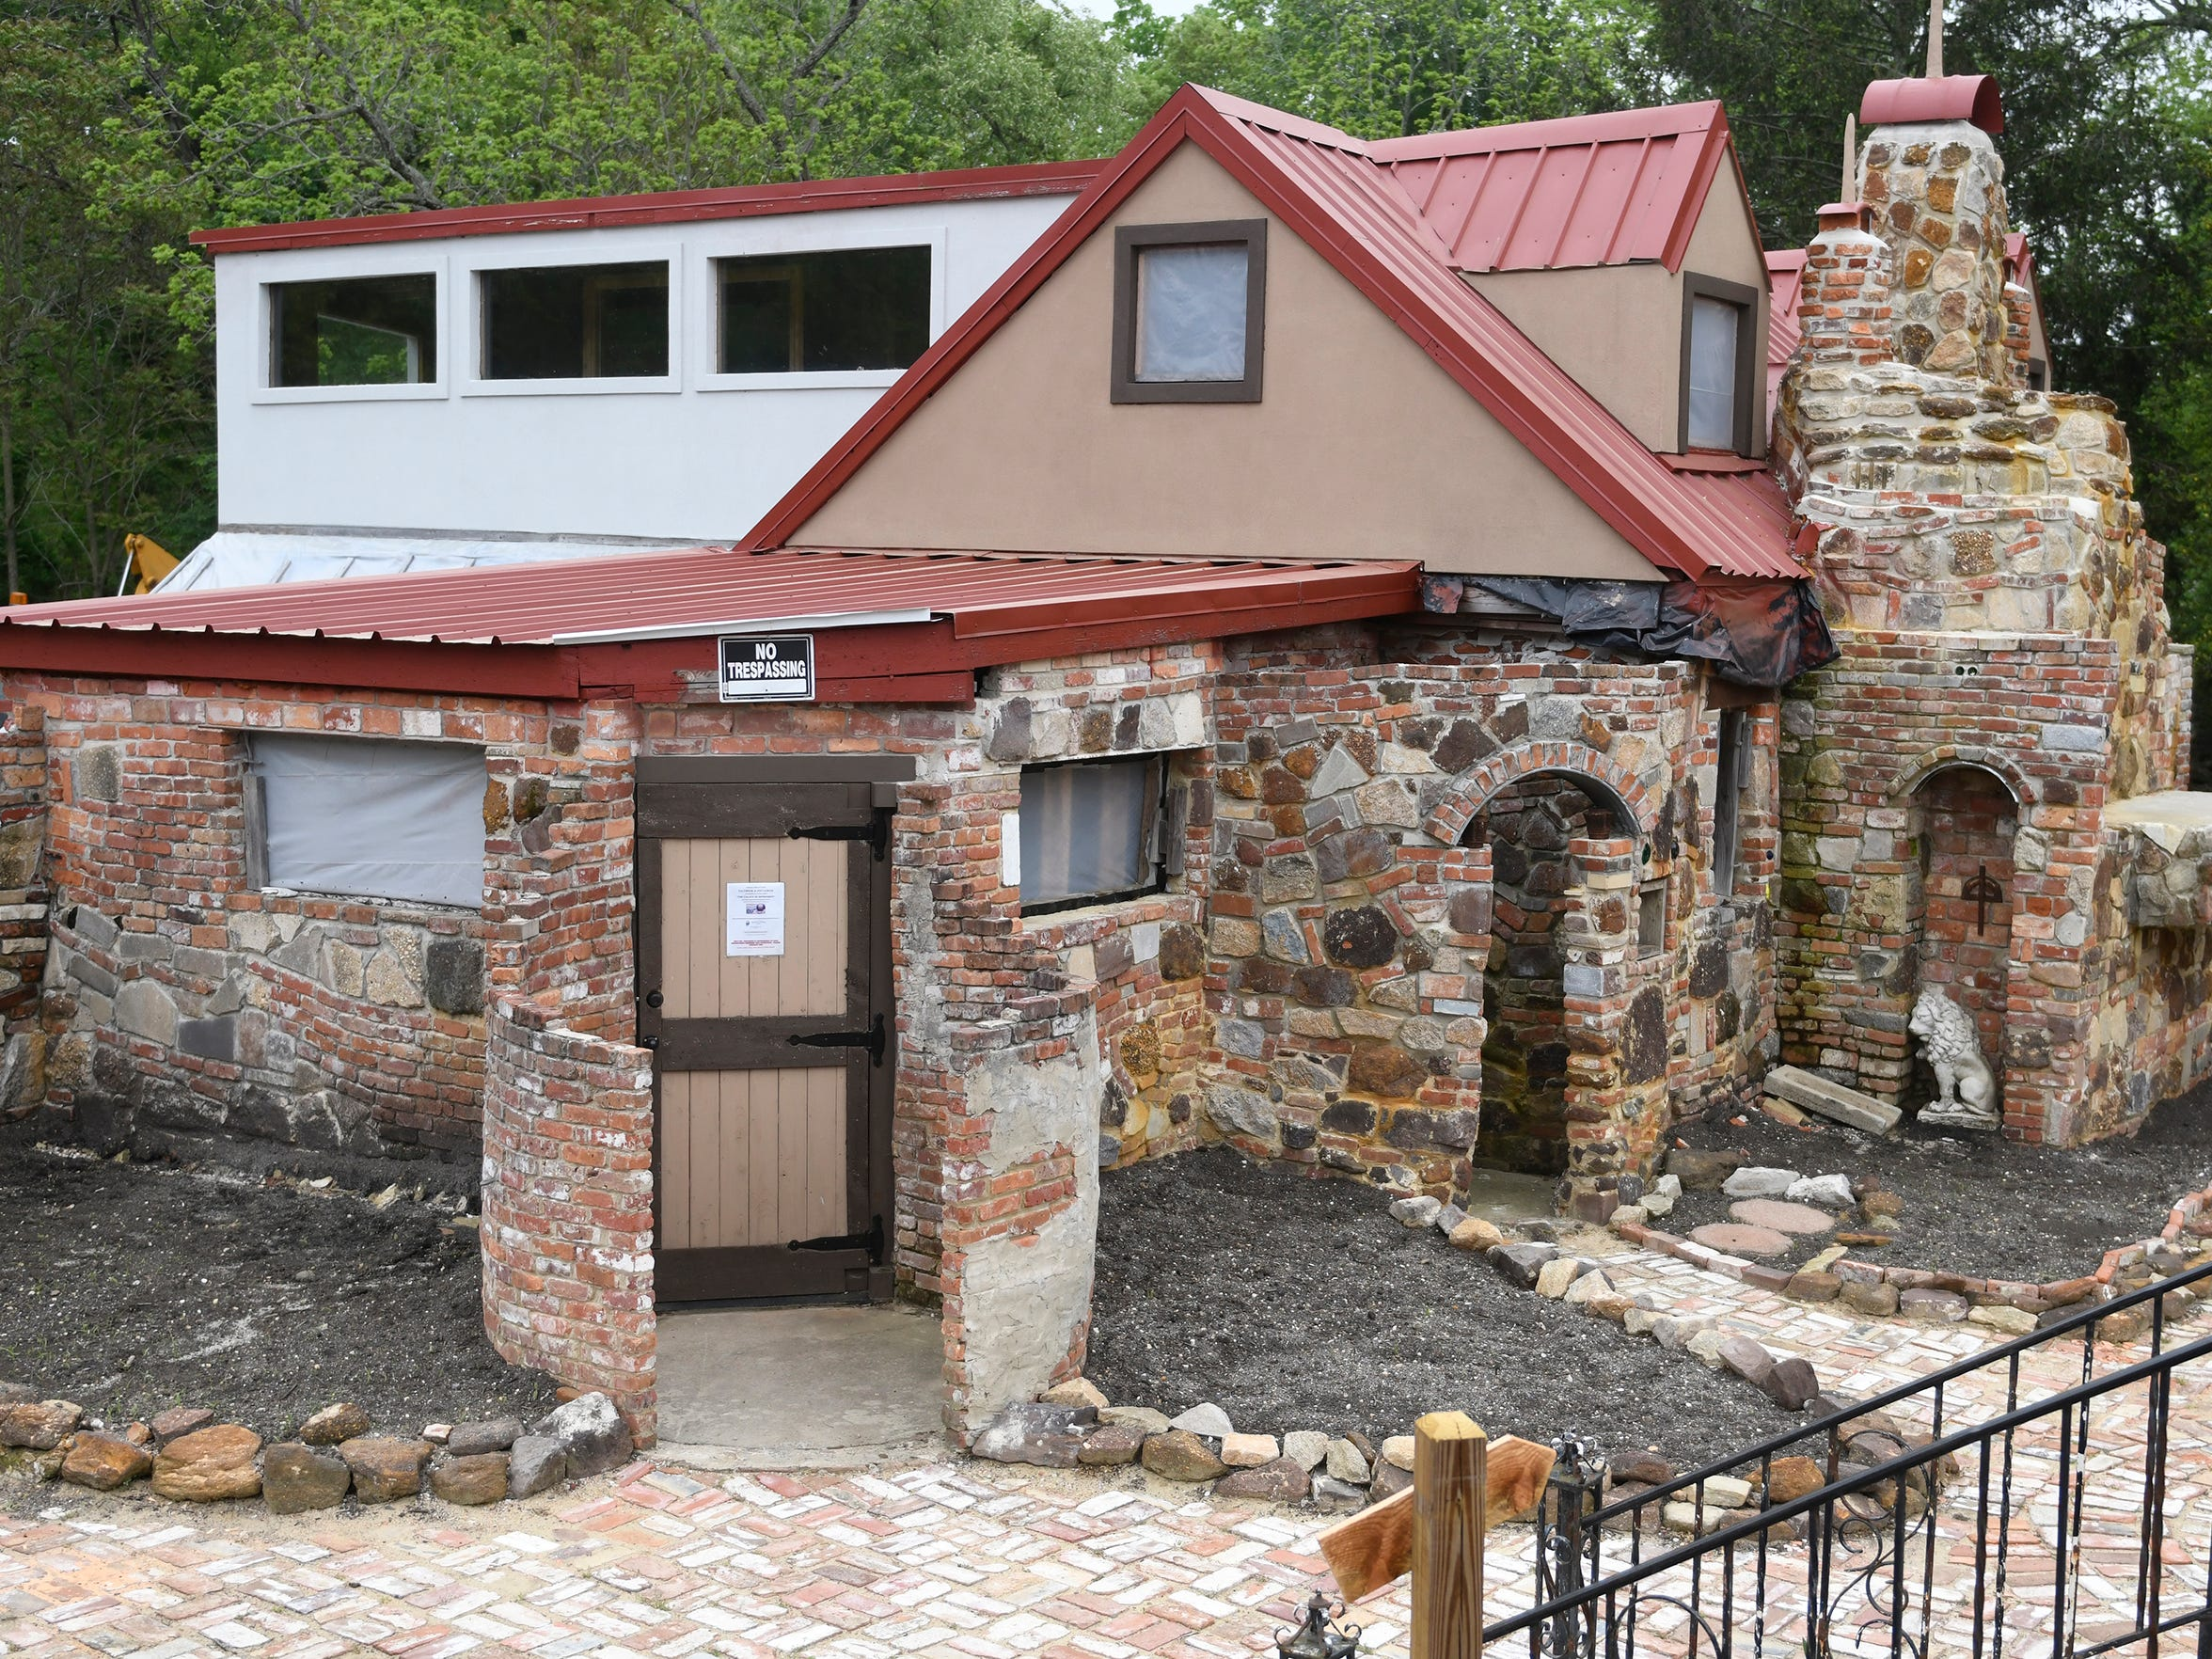 The reconstructed Palace of Depression and new museum will open its doors during this year's Founder's Day festivities in Vineland.